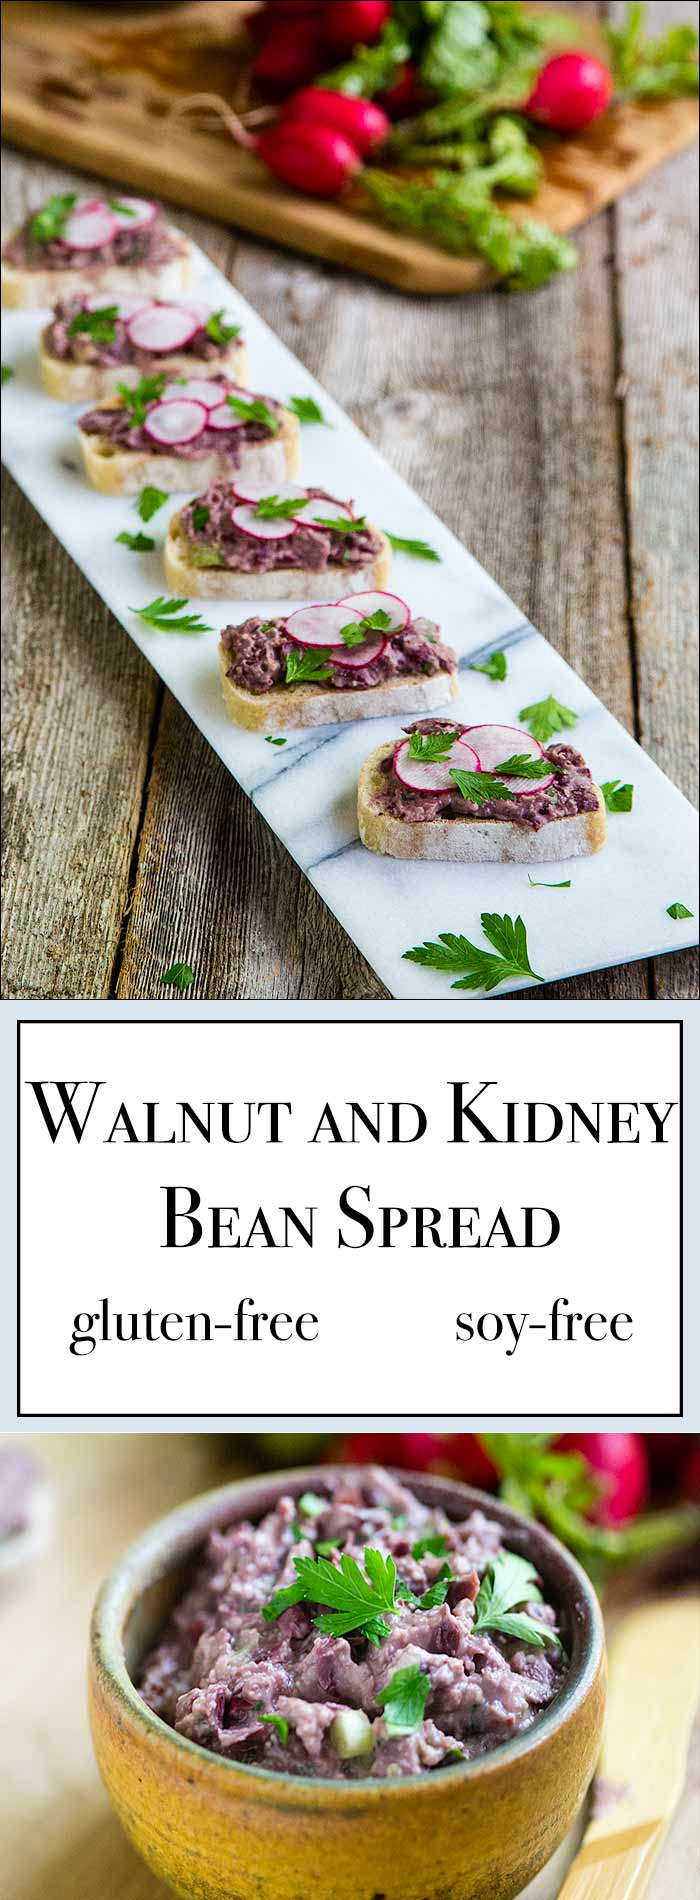 This tangy #vegan kidney bean spread tastes great stuffed into a pita or spread on bread. Load it up with lots of fresh veggies for a great sandwich. One Weight Watchers Smart Point per serving.